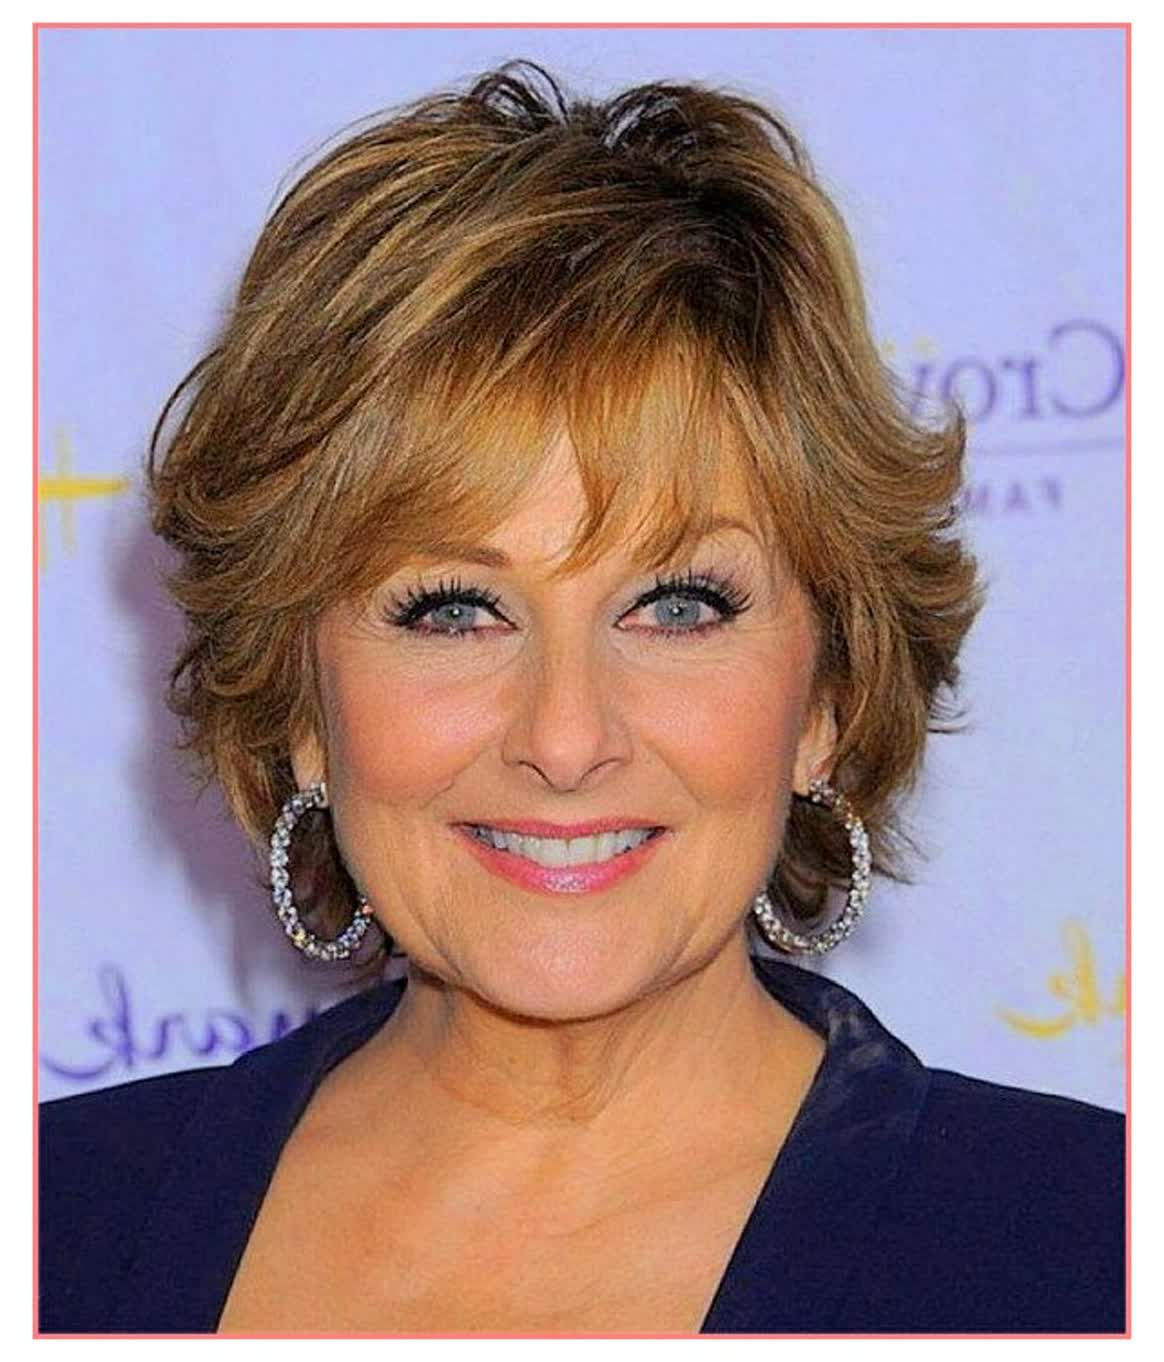 Brilliant Ideas Short Curly Hairstyles For Round Faces Over 50 Short Hair With Layers Hair Styles For Women Over 50 Thick Hair Styles